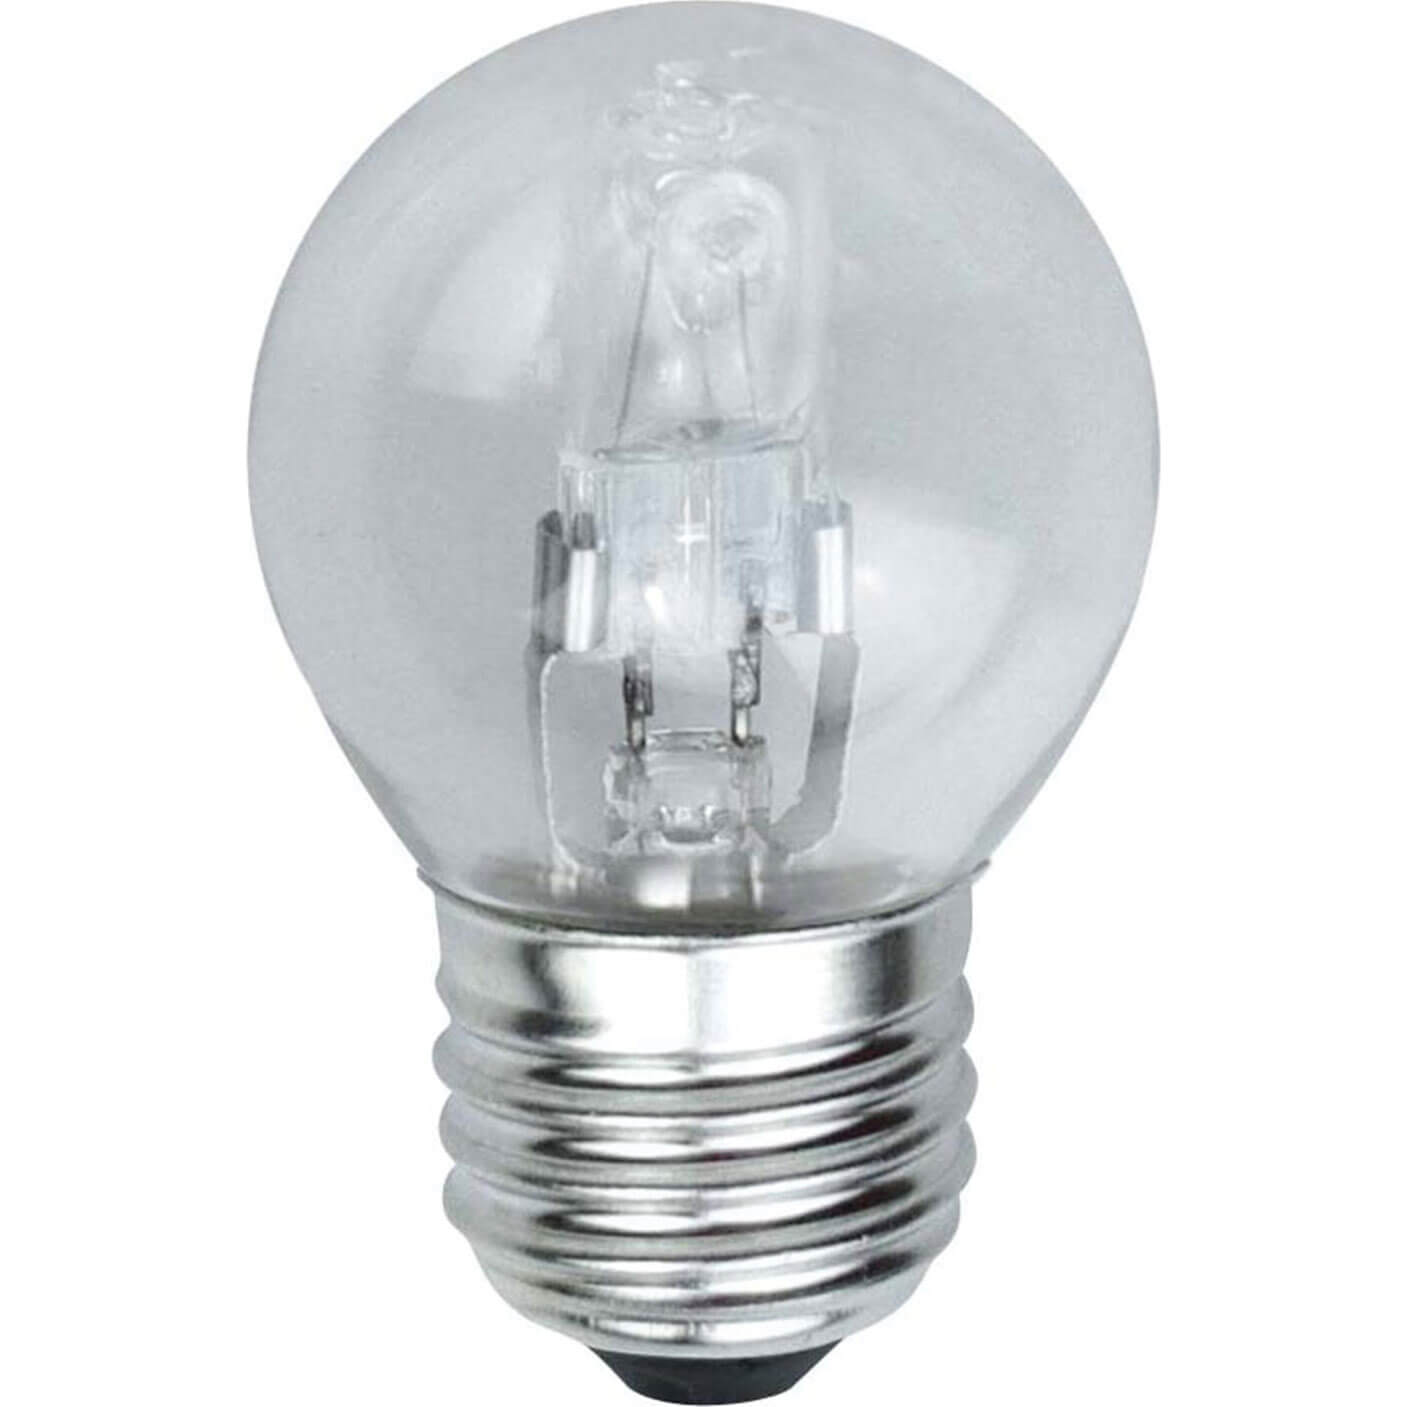 Image of Eveready Energy Save G45 Halogen Golf Bulb ES / E27 Edison Screw 28w